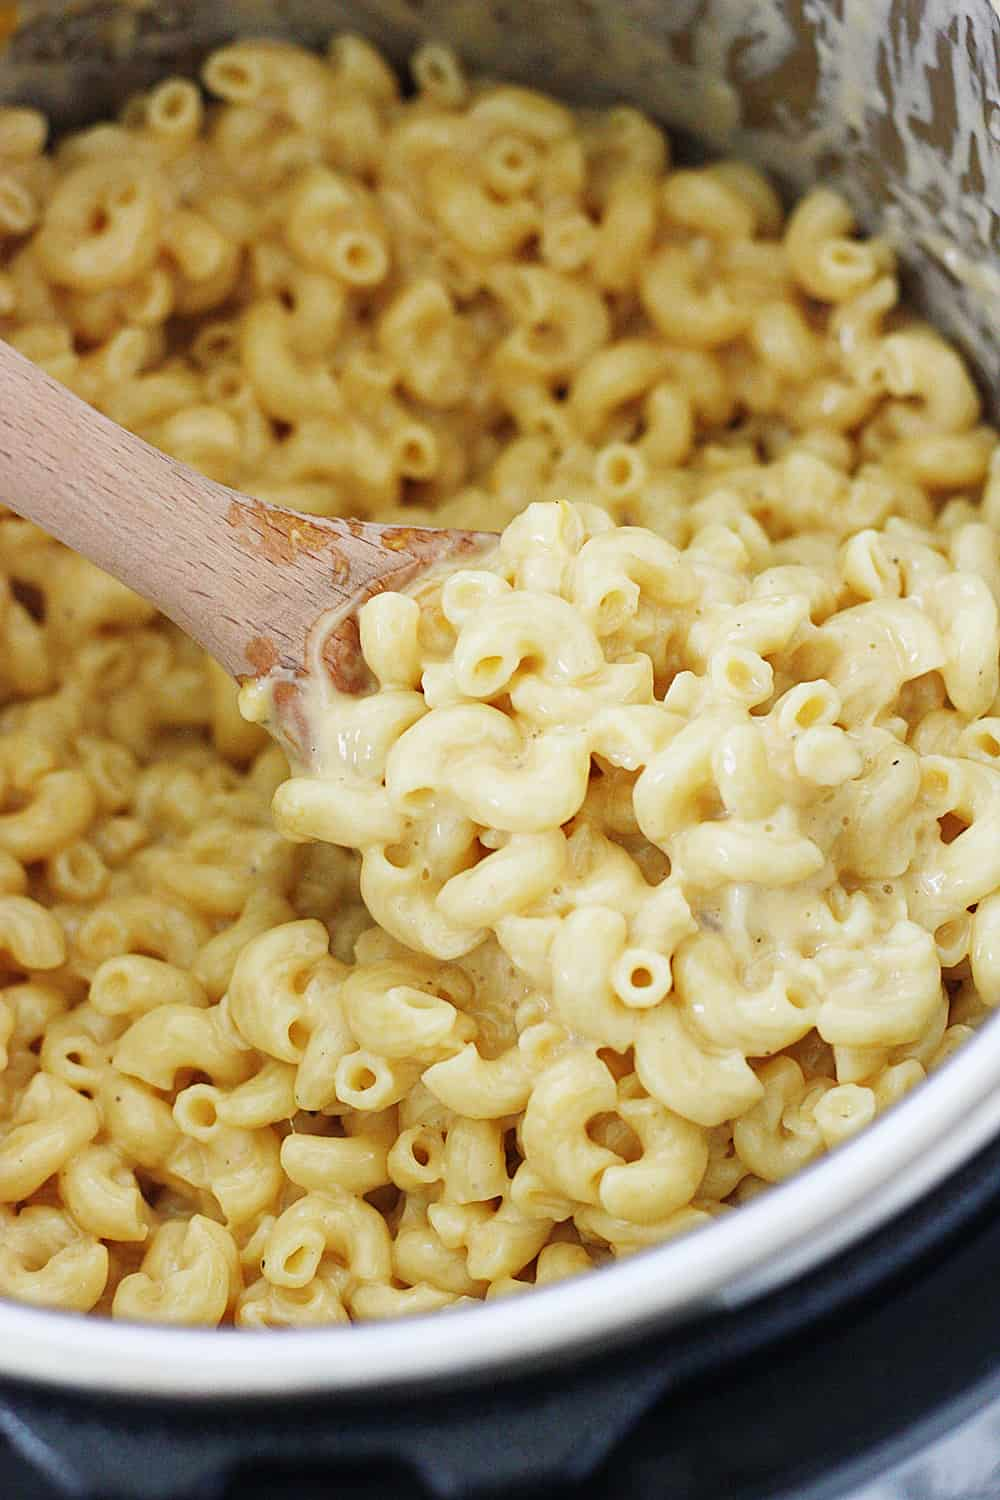 Easy Instant Pot Mac and Cheese - This easy Instant Pot mac and cheese is the creamiest, cheesiest, downright most delicious Instant Pot mac and cheese recipe ever! #macandcheese #instantpot #pressurecooker #macaroniandcheese #pasta #easyrecipe #recipe #cooking #halfscratched #ad #jarlsberg #cheese